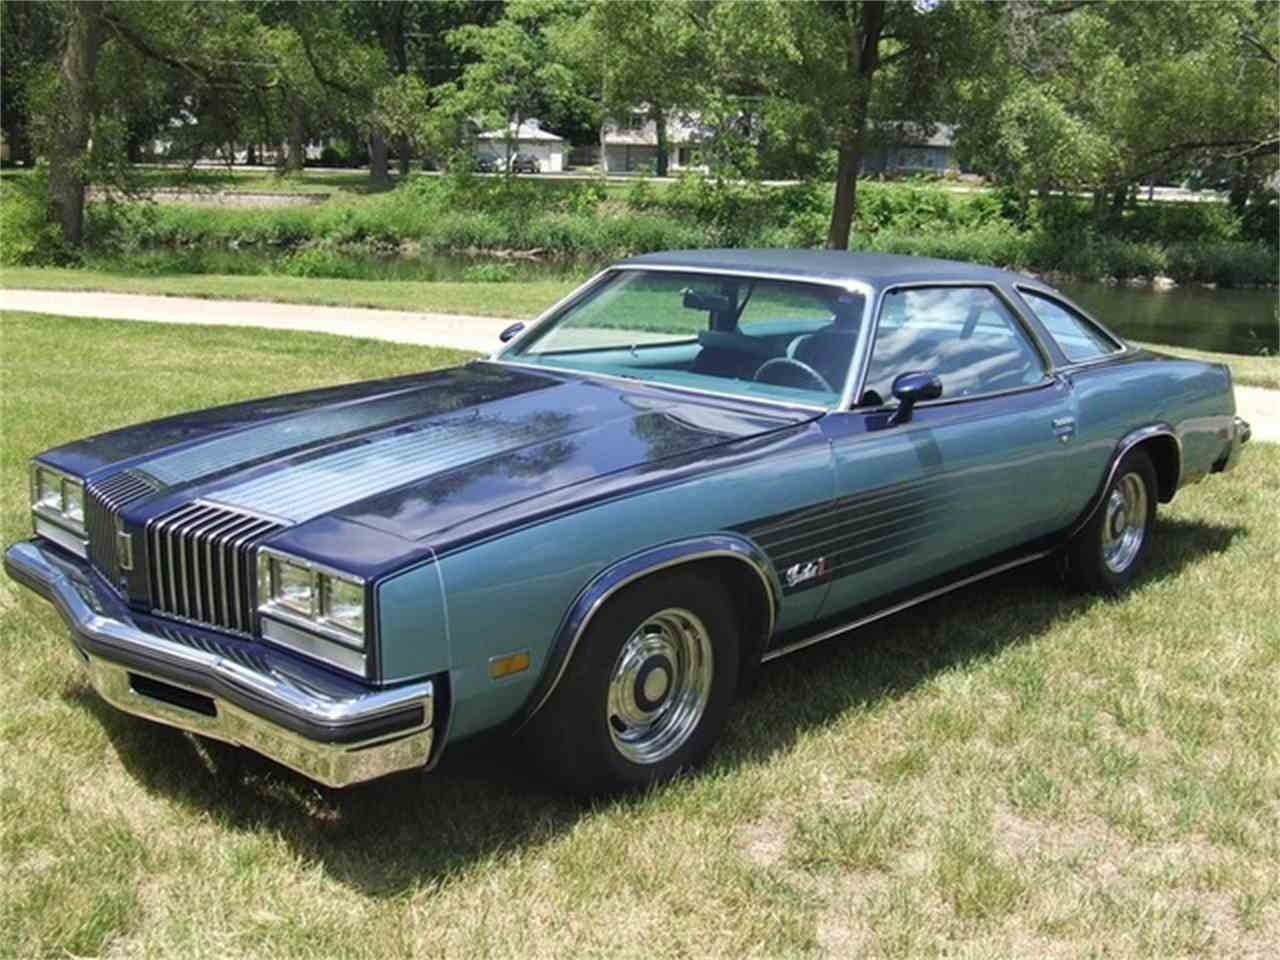 1977 oldsmobile cutlass for sale cc 616707 for 1977 cutlass salon for sale